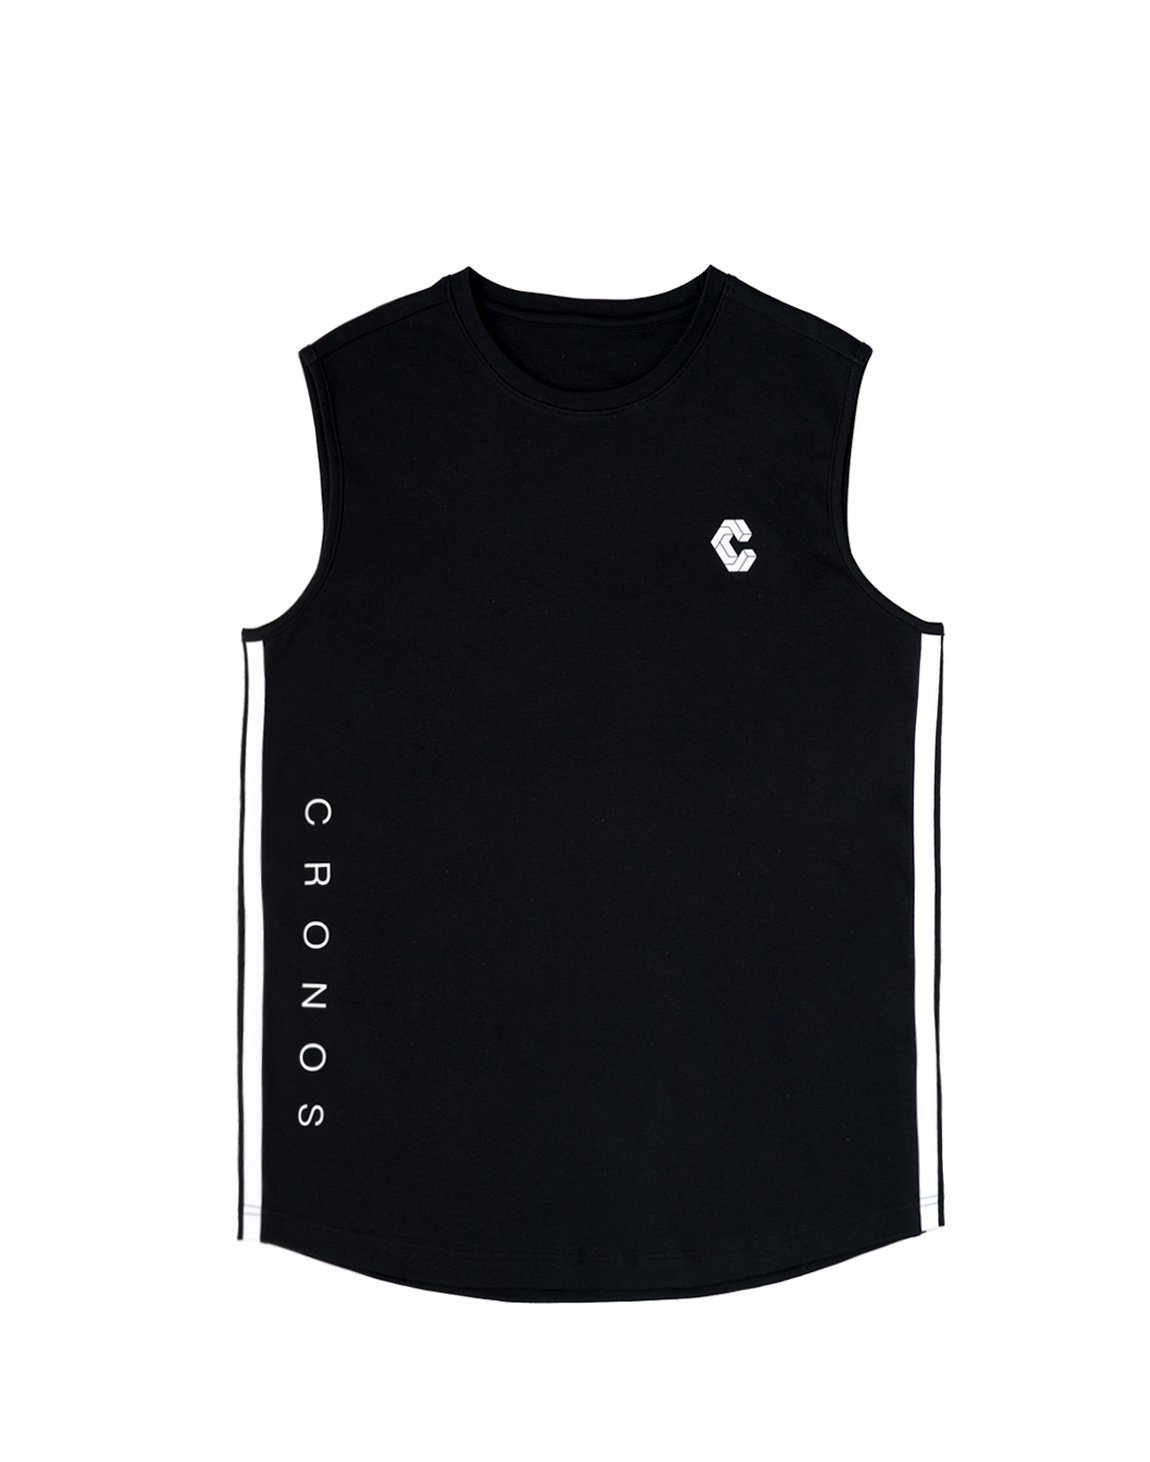 <img class='new_mark_img1' src='https://img.shop-pro.jp/img/new/icons55.gif' style='border:none;display:inline;margin:0px;padding:0px;width:auto;' />CRONOS NEW 2STRIPE TANK TOP【BLACK】